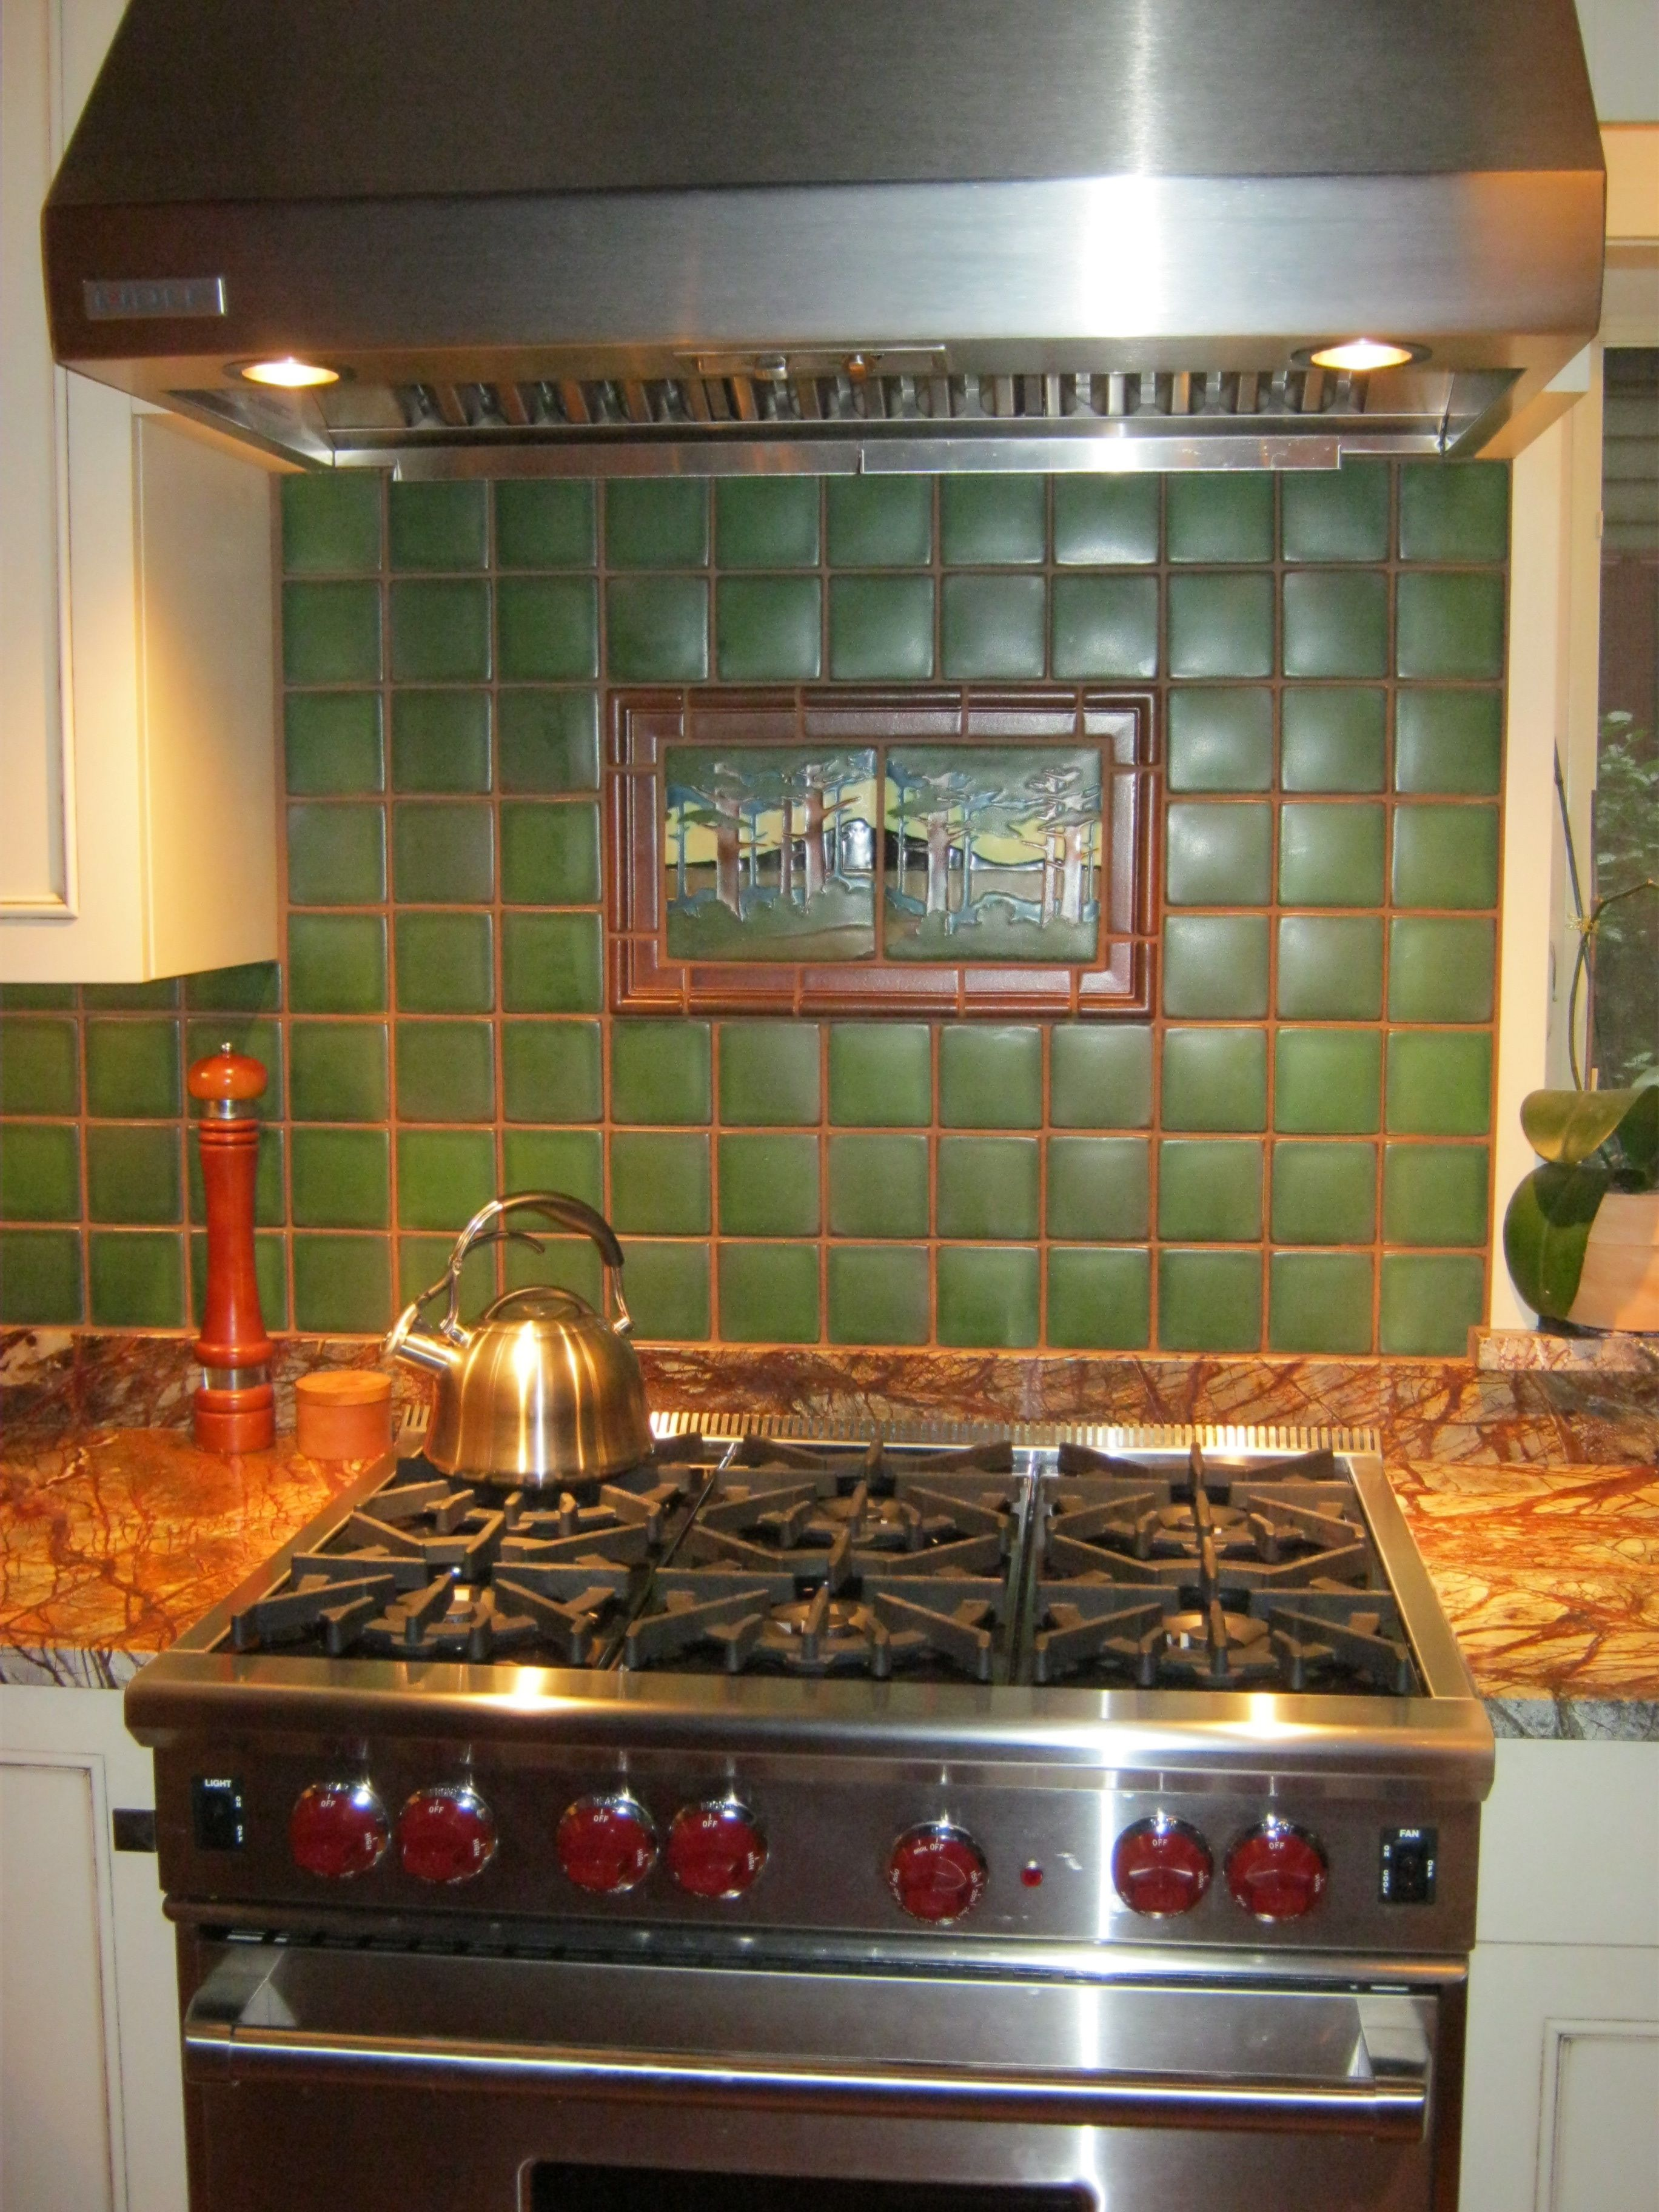 Motawi backsplash tile at Ceramiche Tile and Stone | For the ...